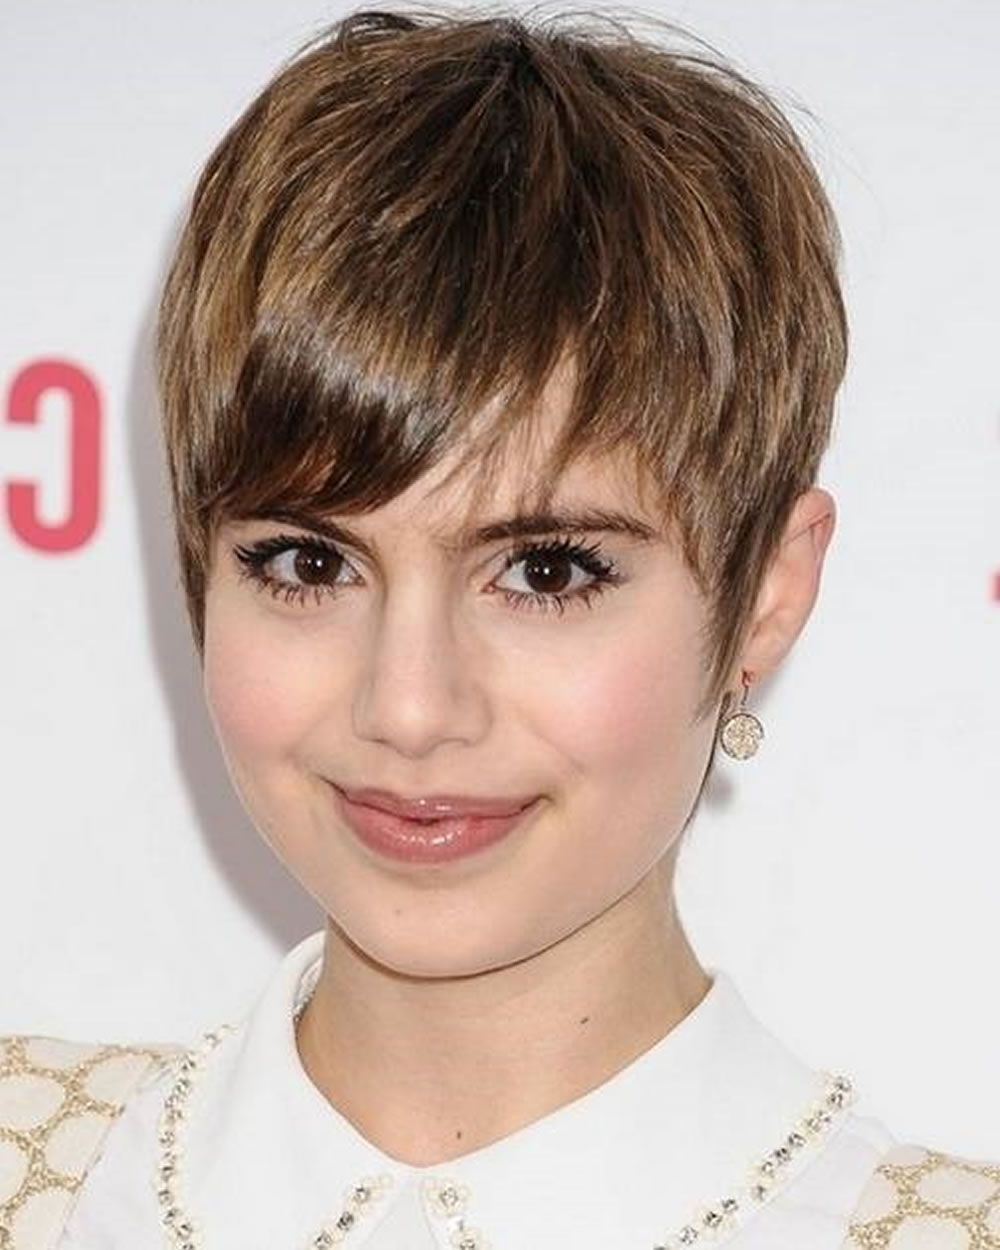 Top 10 Pixie Hairstyles For Round Faces Short hair